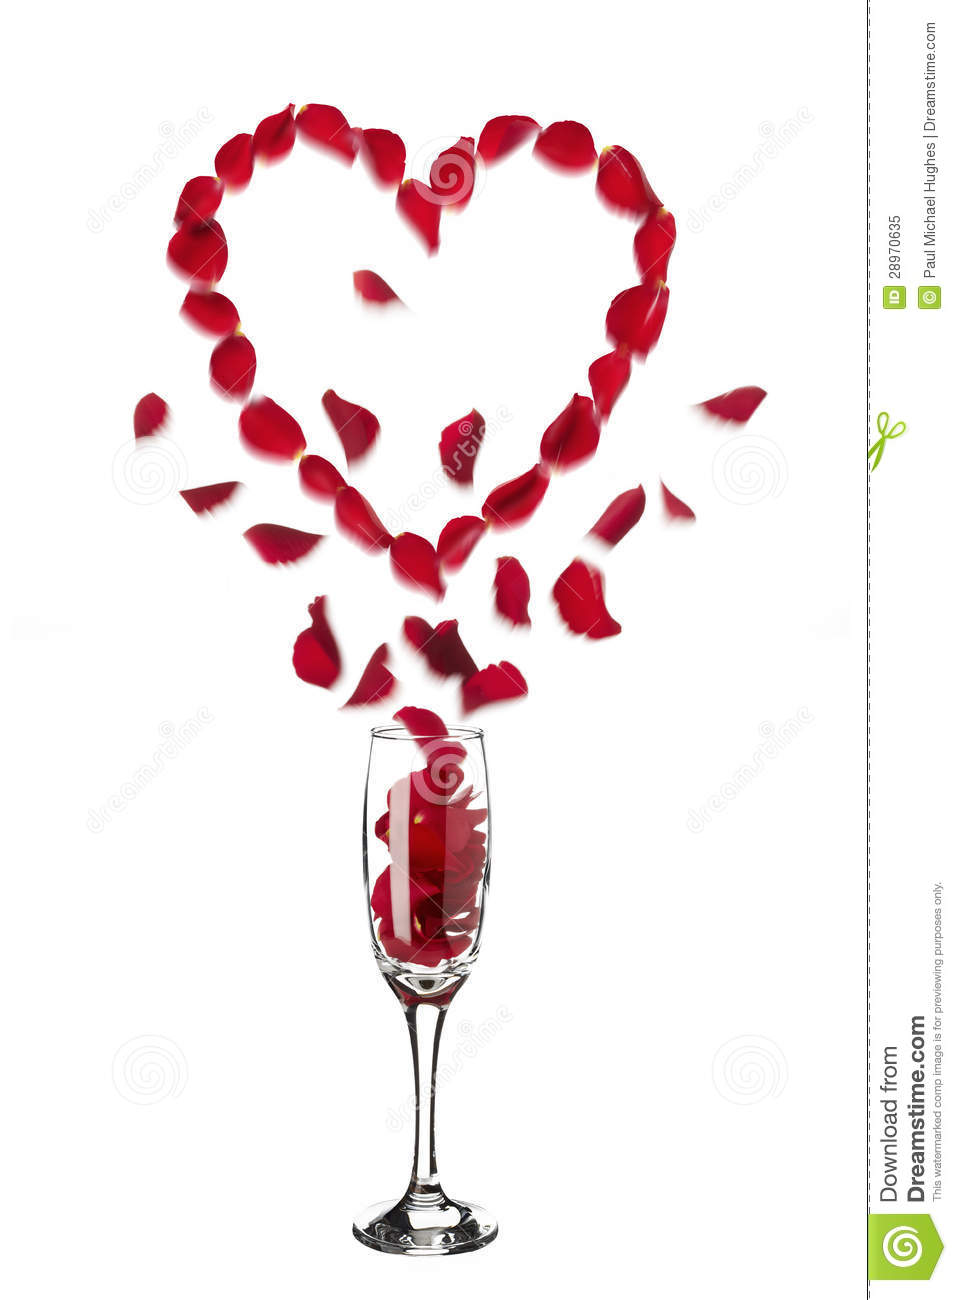 Heart Shaped Red Rose Petals Popping Out Of Champagne